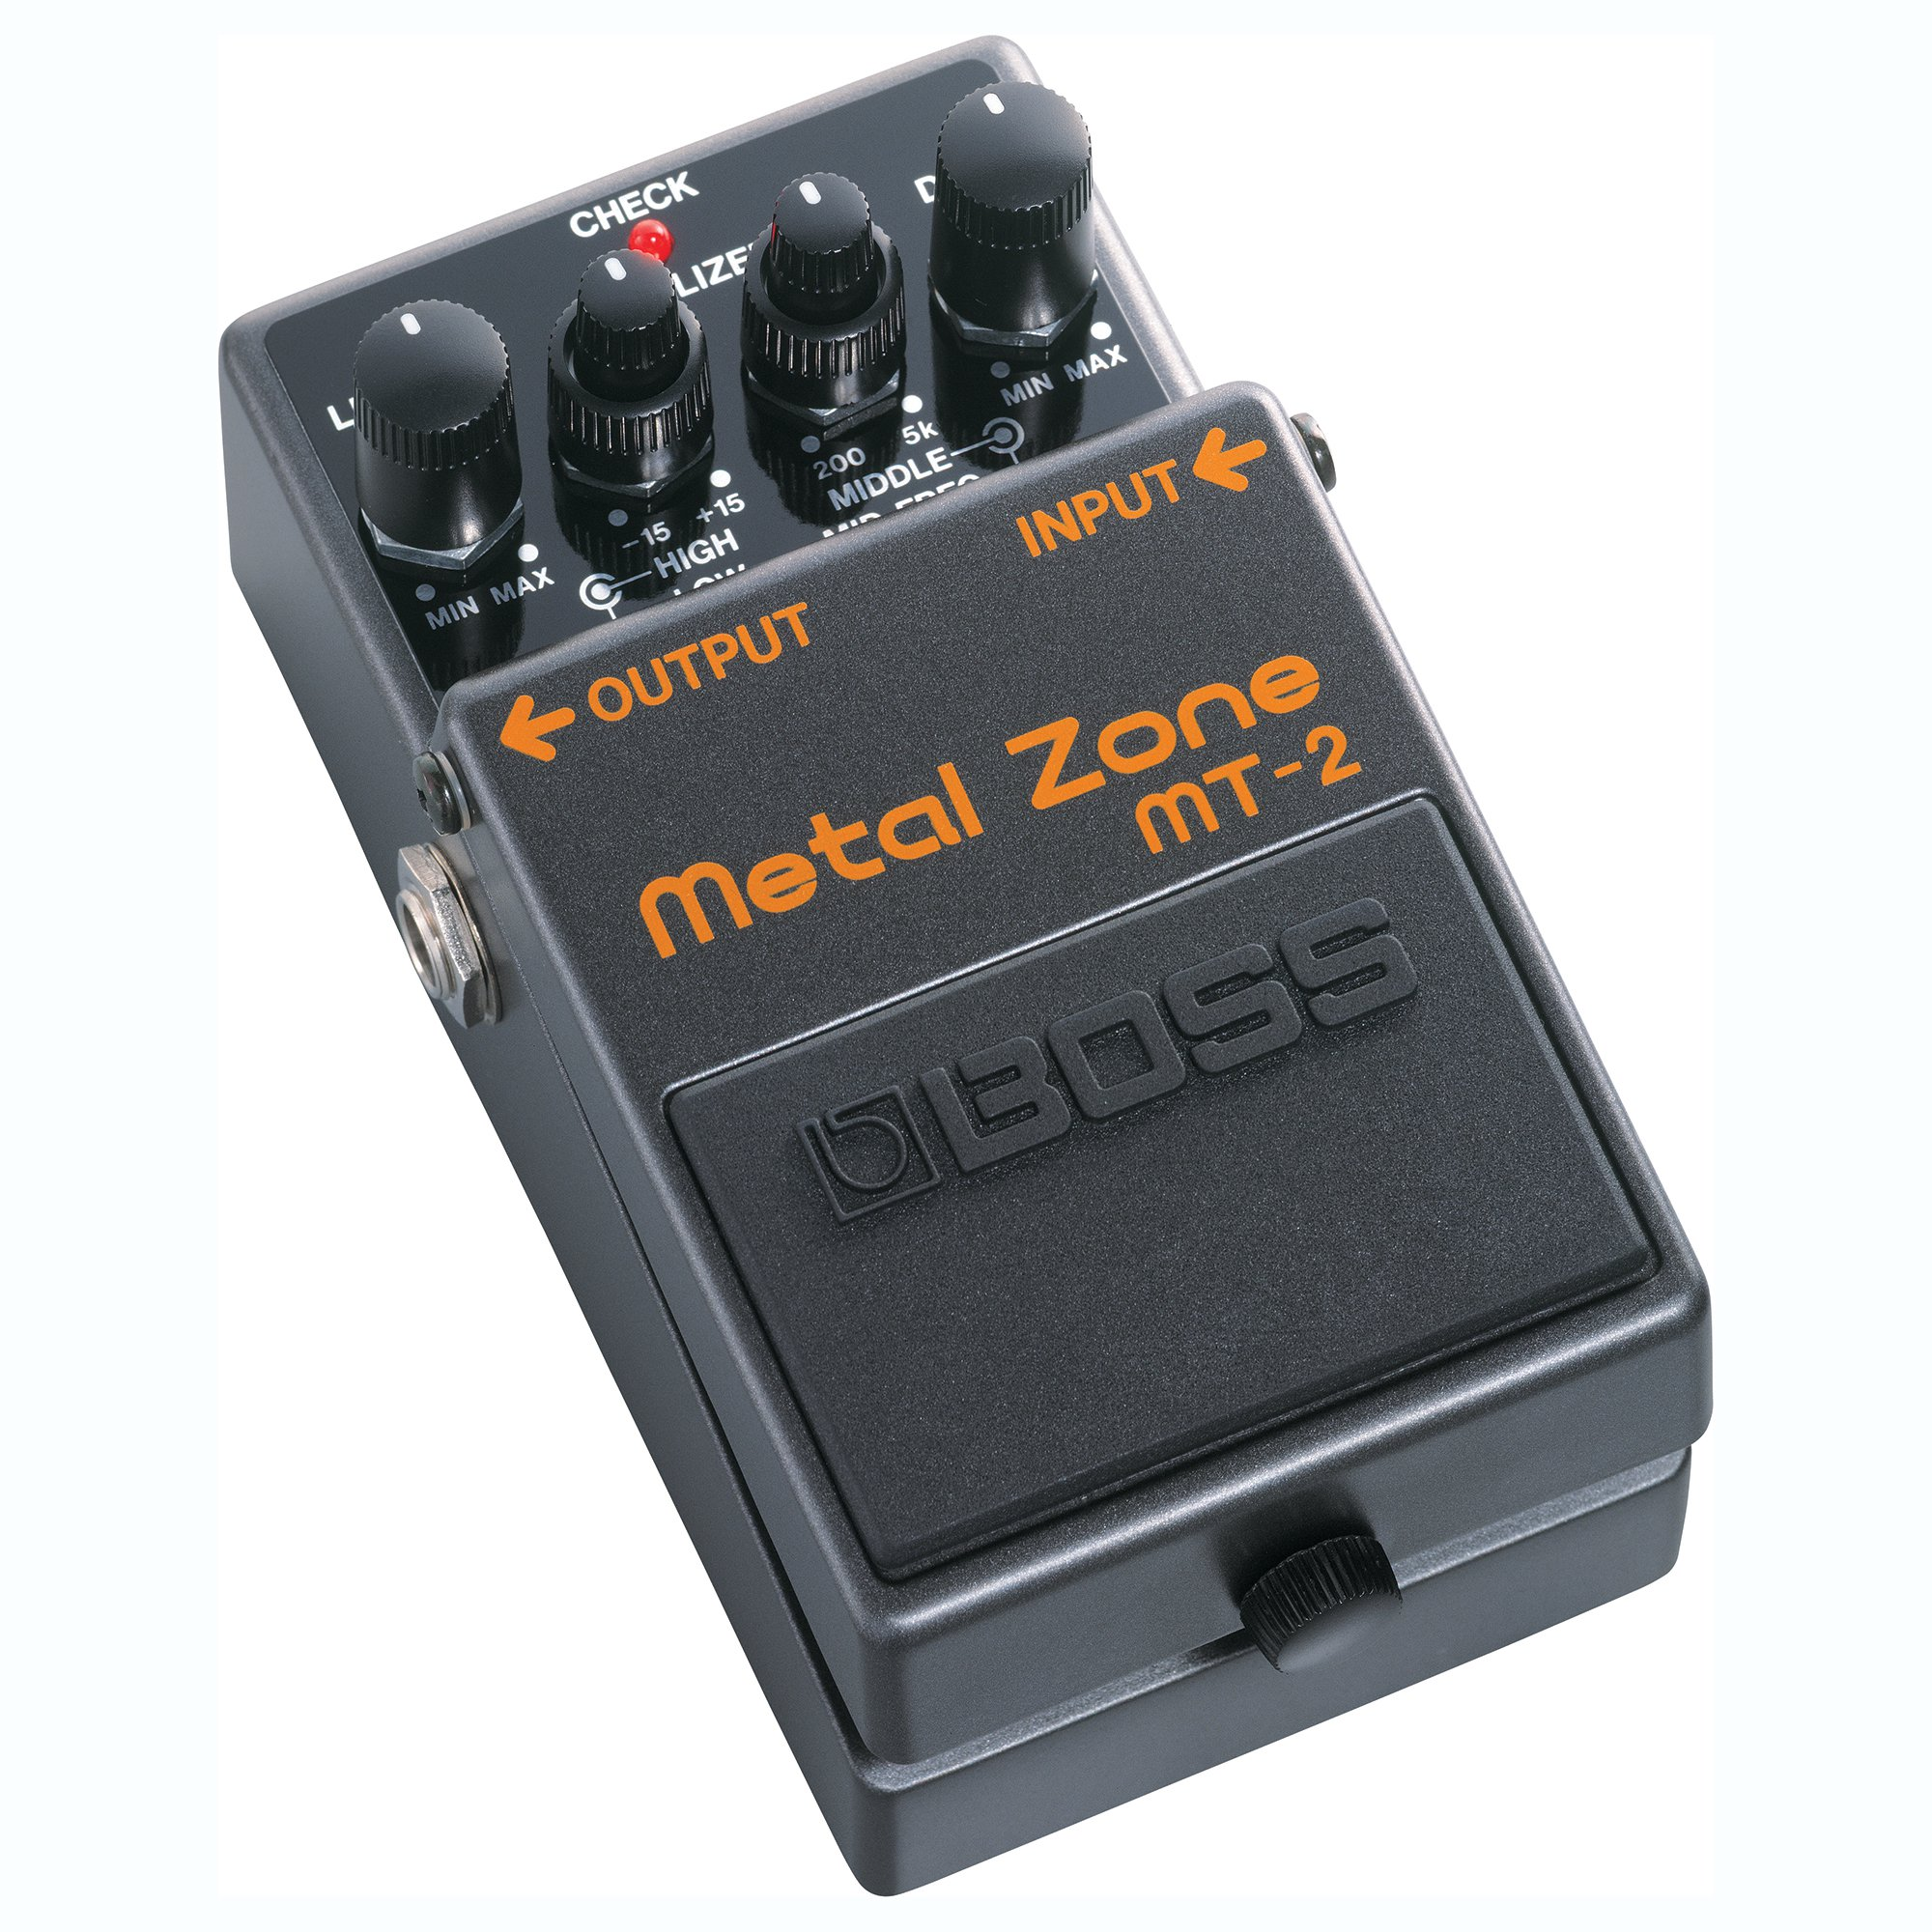 Boss MT-2 Metal Zone Multi Effects Stomp Amp Guitar Processor Pedal Stompbox by Boss